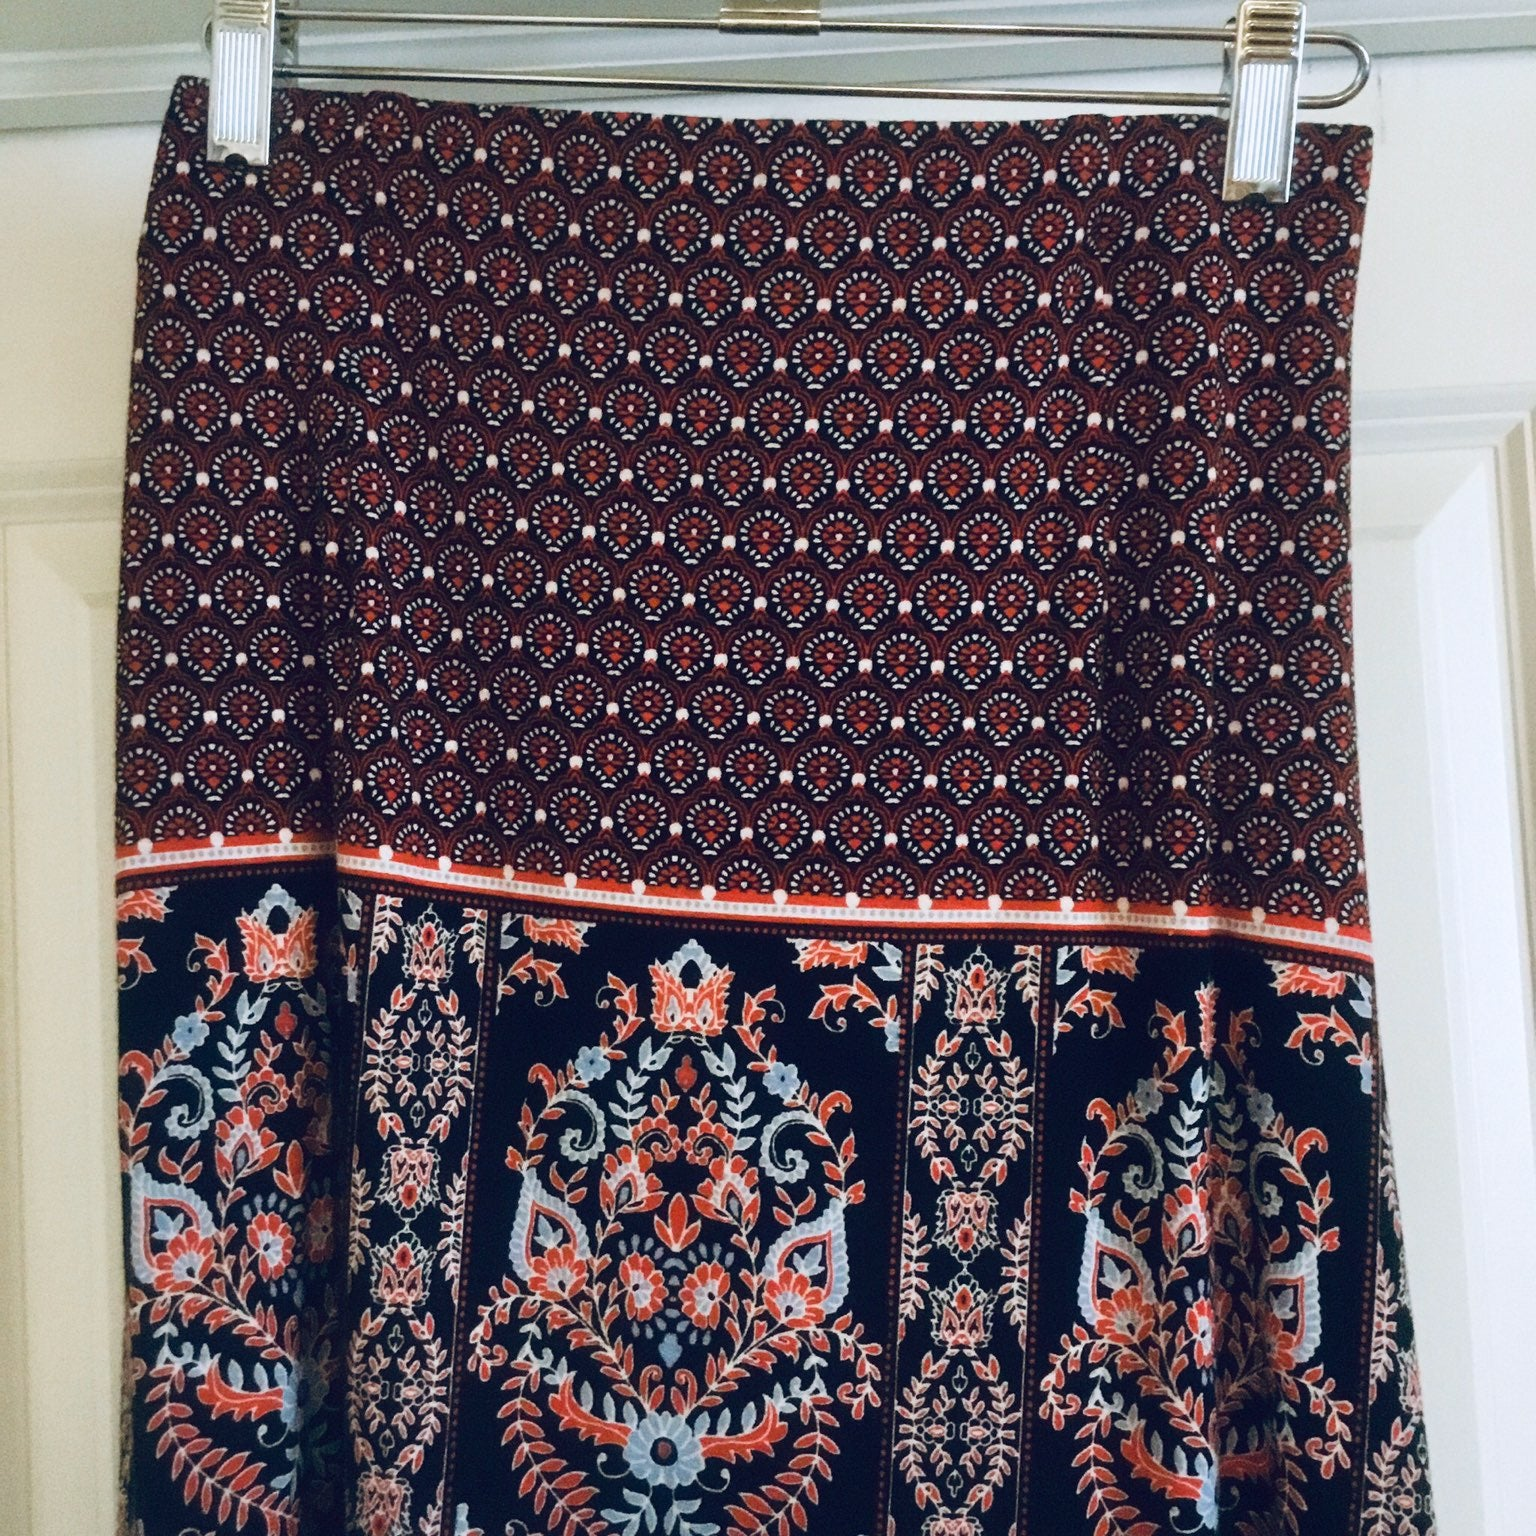 J. Jill Print Long Flowing Skirt Medium